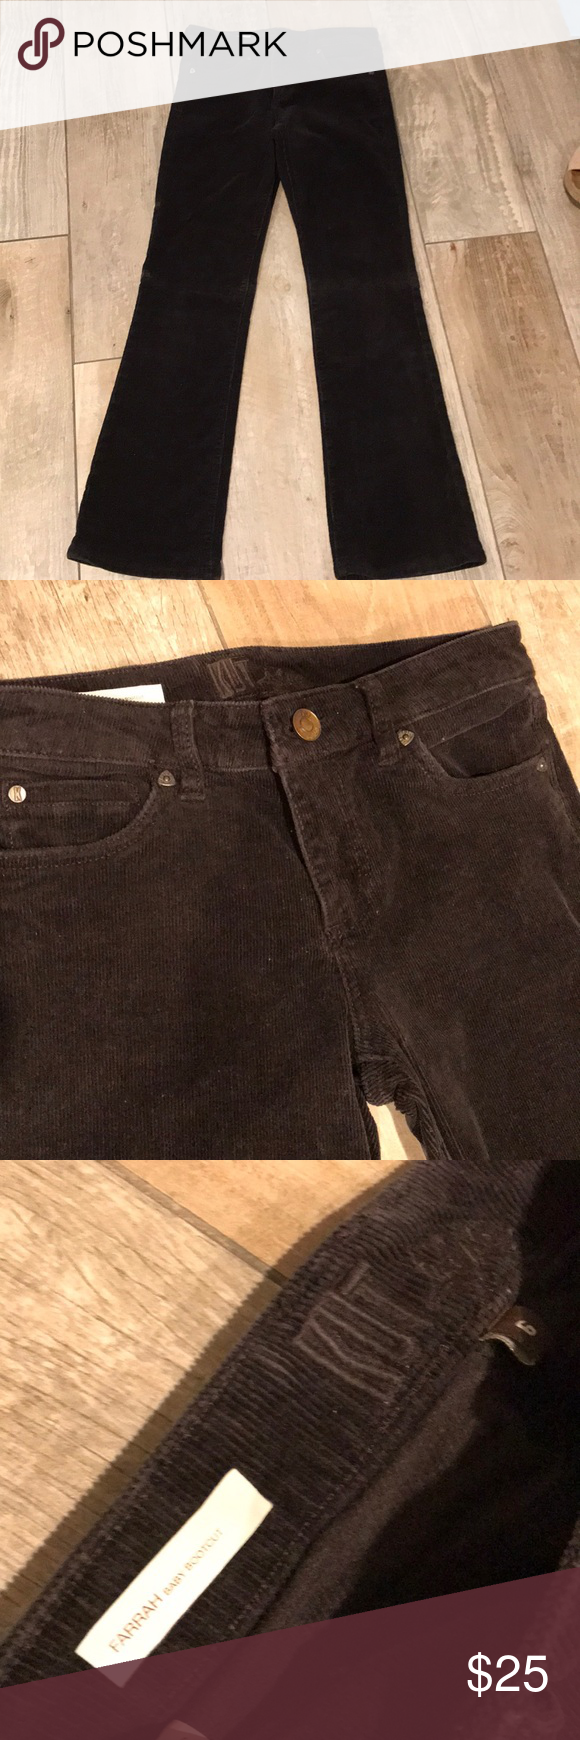 Kut from the Kloth Corduroy Jeans. Great condition, hardly worn. Inseam 30 and 1/2 inches. Kut from the Kloth Jeans Boot Cut